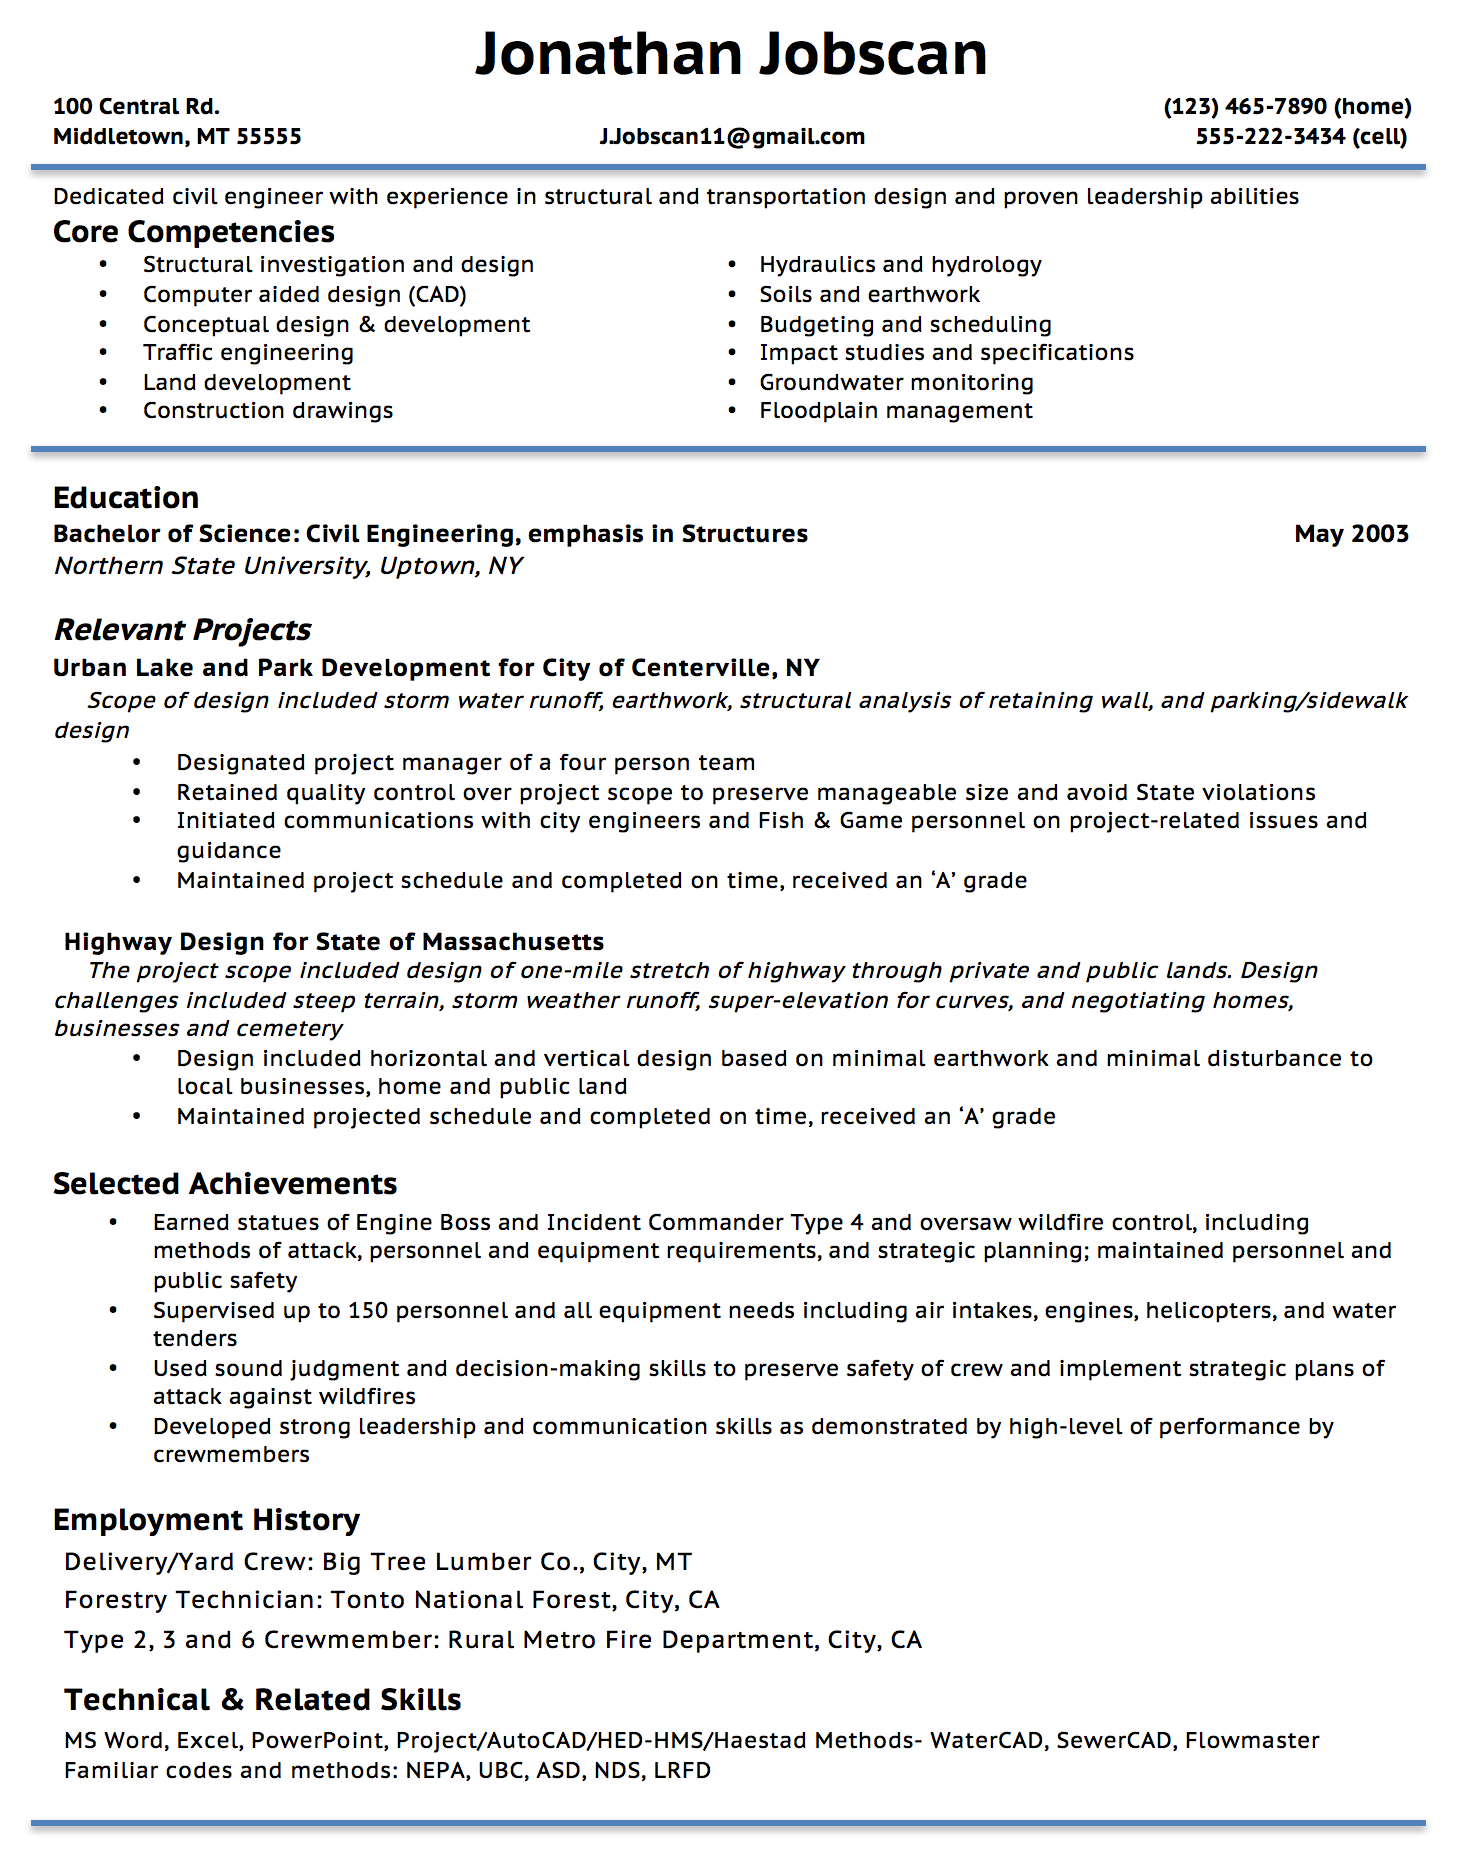 Opposenewapstandardsus  Personable Resume Writing Guide  Jobscan With Fetching Example Of A Functional Resume Format With Divine Warehouse Manager Resume Sample Also List Of Verbs For Resume In Addition How To Make A Strong Resume And Objective Line On Resume As Well As Cover Page Example For Resume Additionally How To Write References In A Resume From Jobscanco With Opposenewapstandardsus  Fetching Resume Writing Guide  Jobscan With Divine Example Of A Functional Resume Format And Personable Warehouse Manager Resume Sample Also List Of Verbs For Resume In Addition How To Make A Strong Resume From Jobscanco